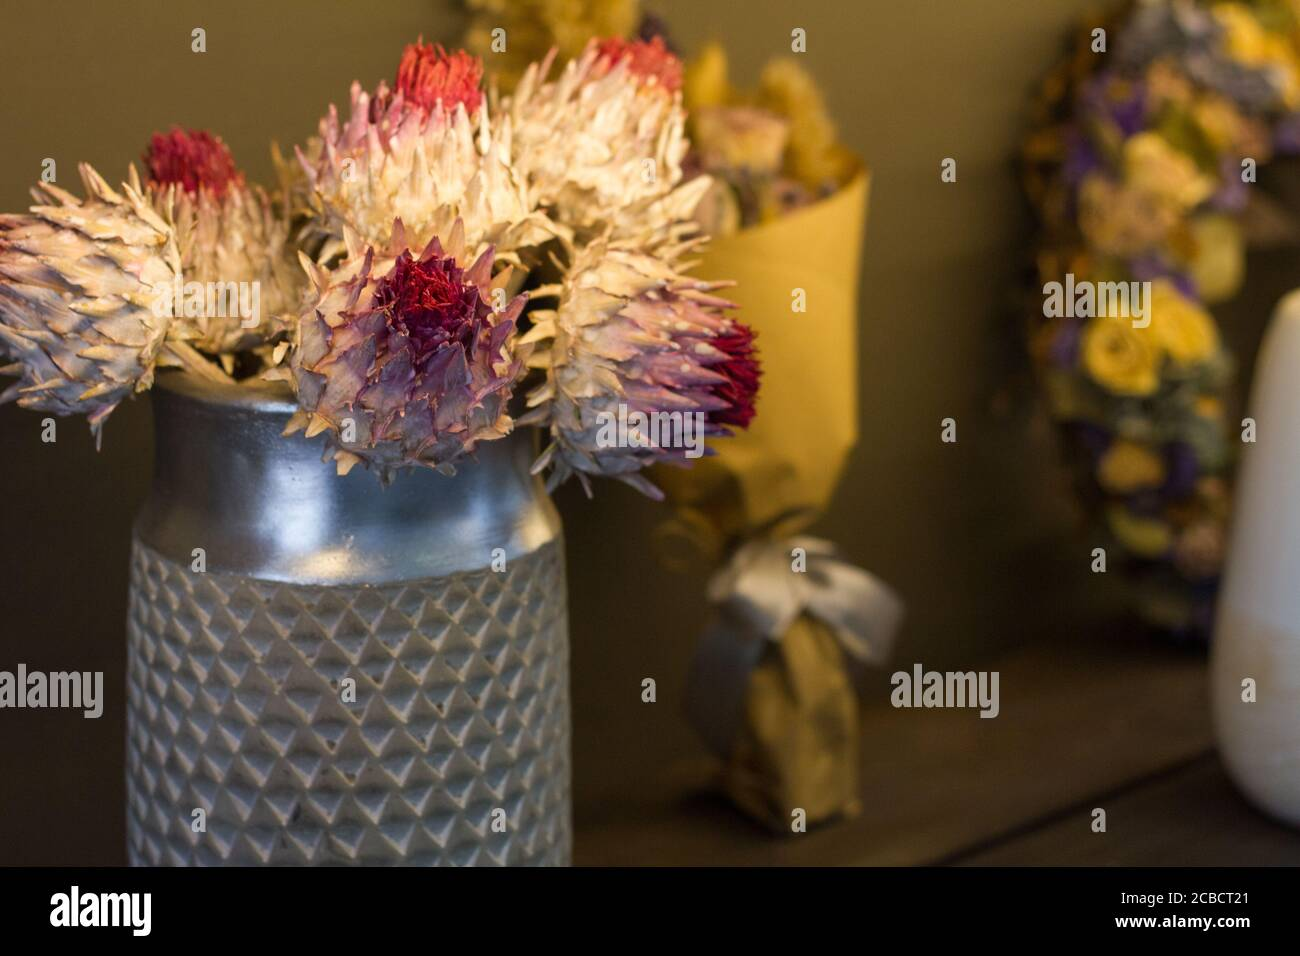 Dried Protea High Resolution Stock Photography And Images Alamy